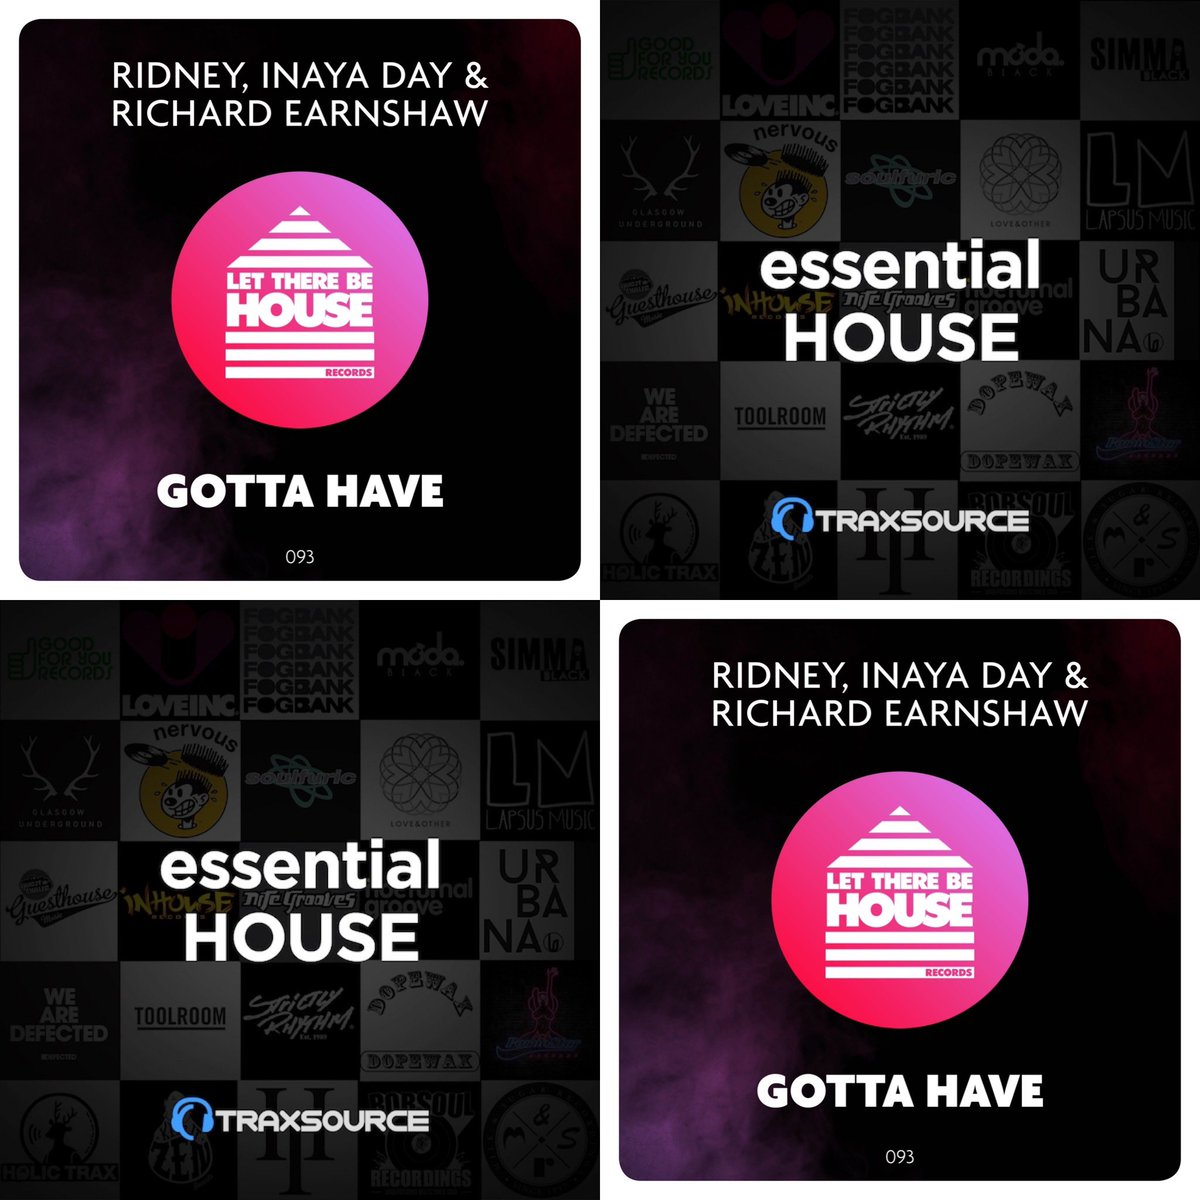 Essential support from @traxsource at no. 3 in the Essential House chart @ridney @INAYADAY @LTBH_pic.twitter.com/2RyEYQ1lMv